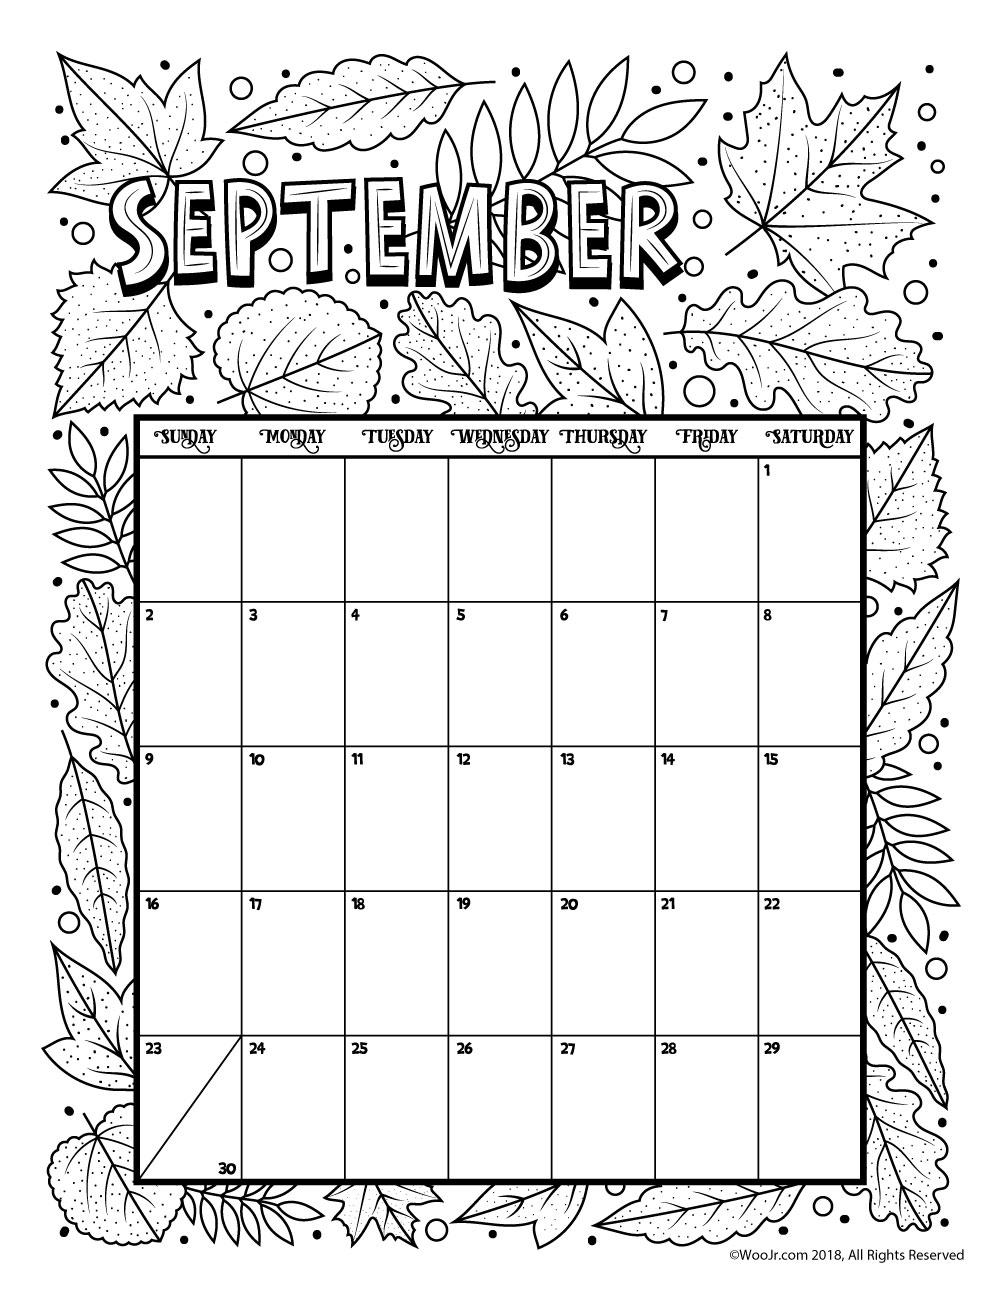 September 2018 Coloring Printable Calendar Page